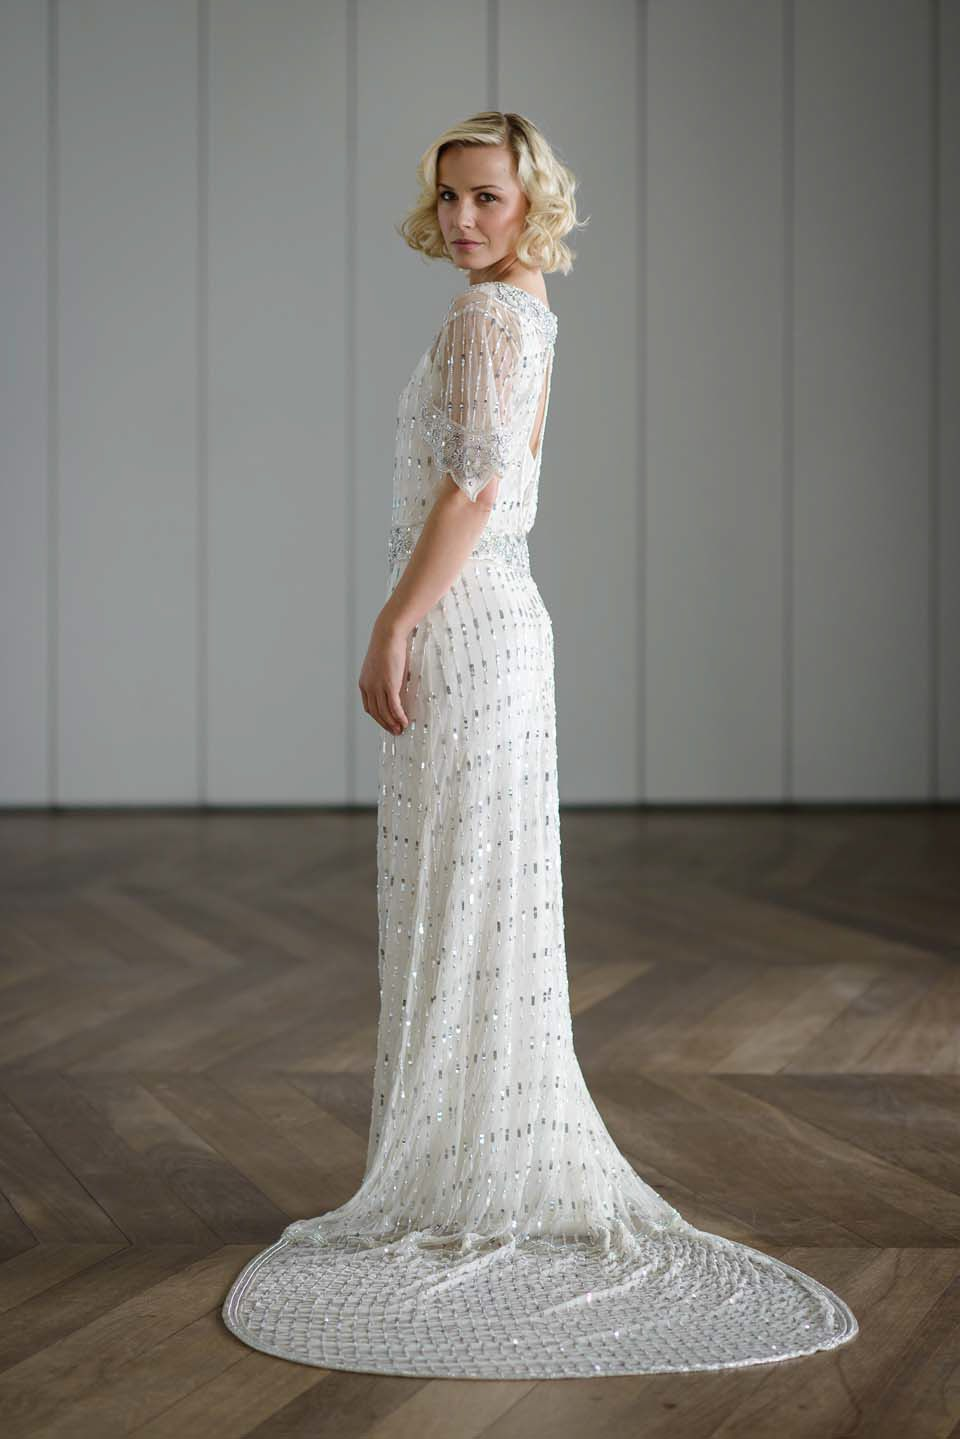 Vicky Rowe A Debut Collection Of 1920s And 1930s Inspired Heirloom Style Wedding Dresses Love My Dress Uk Blog Yes